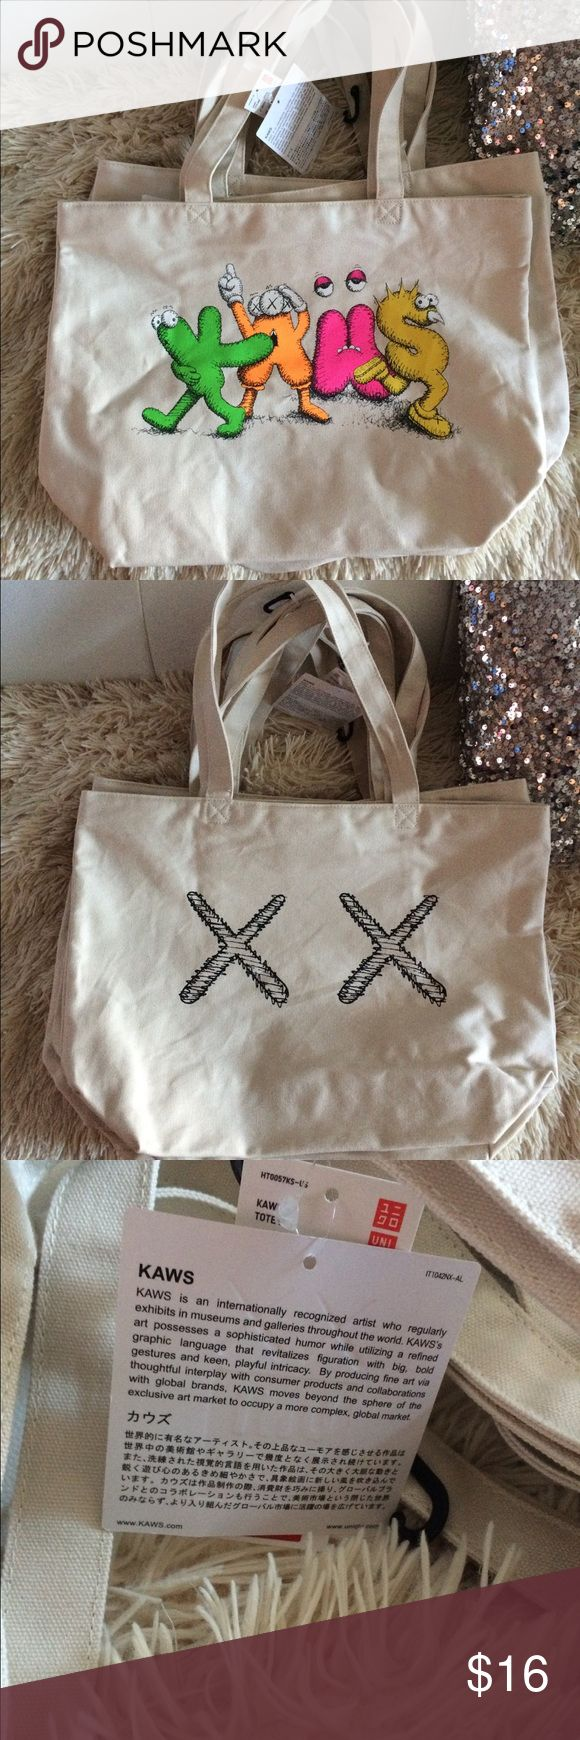 Kaws X Uniqlo Tote Bag Cream Beige Brand new, never worn. Tags are attached. Kaws X Uniqlo Tote Bag. Uniqlo Accessories Hats